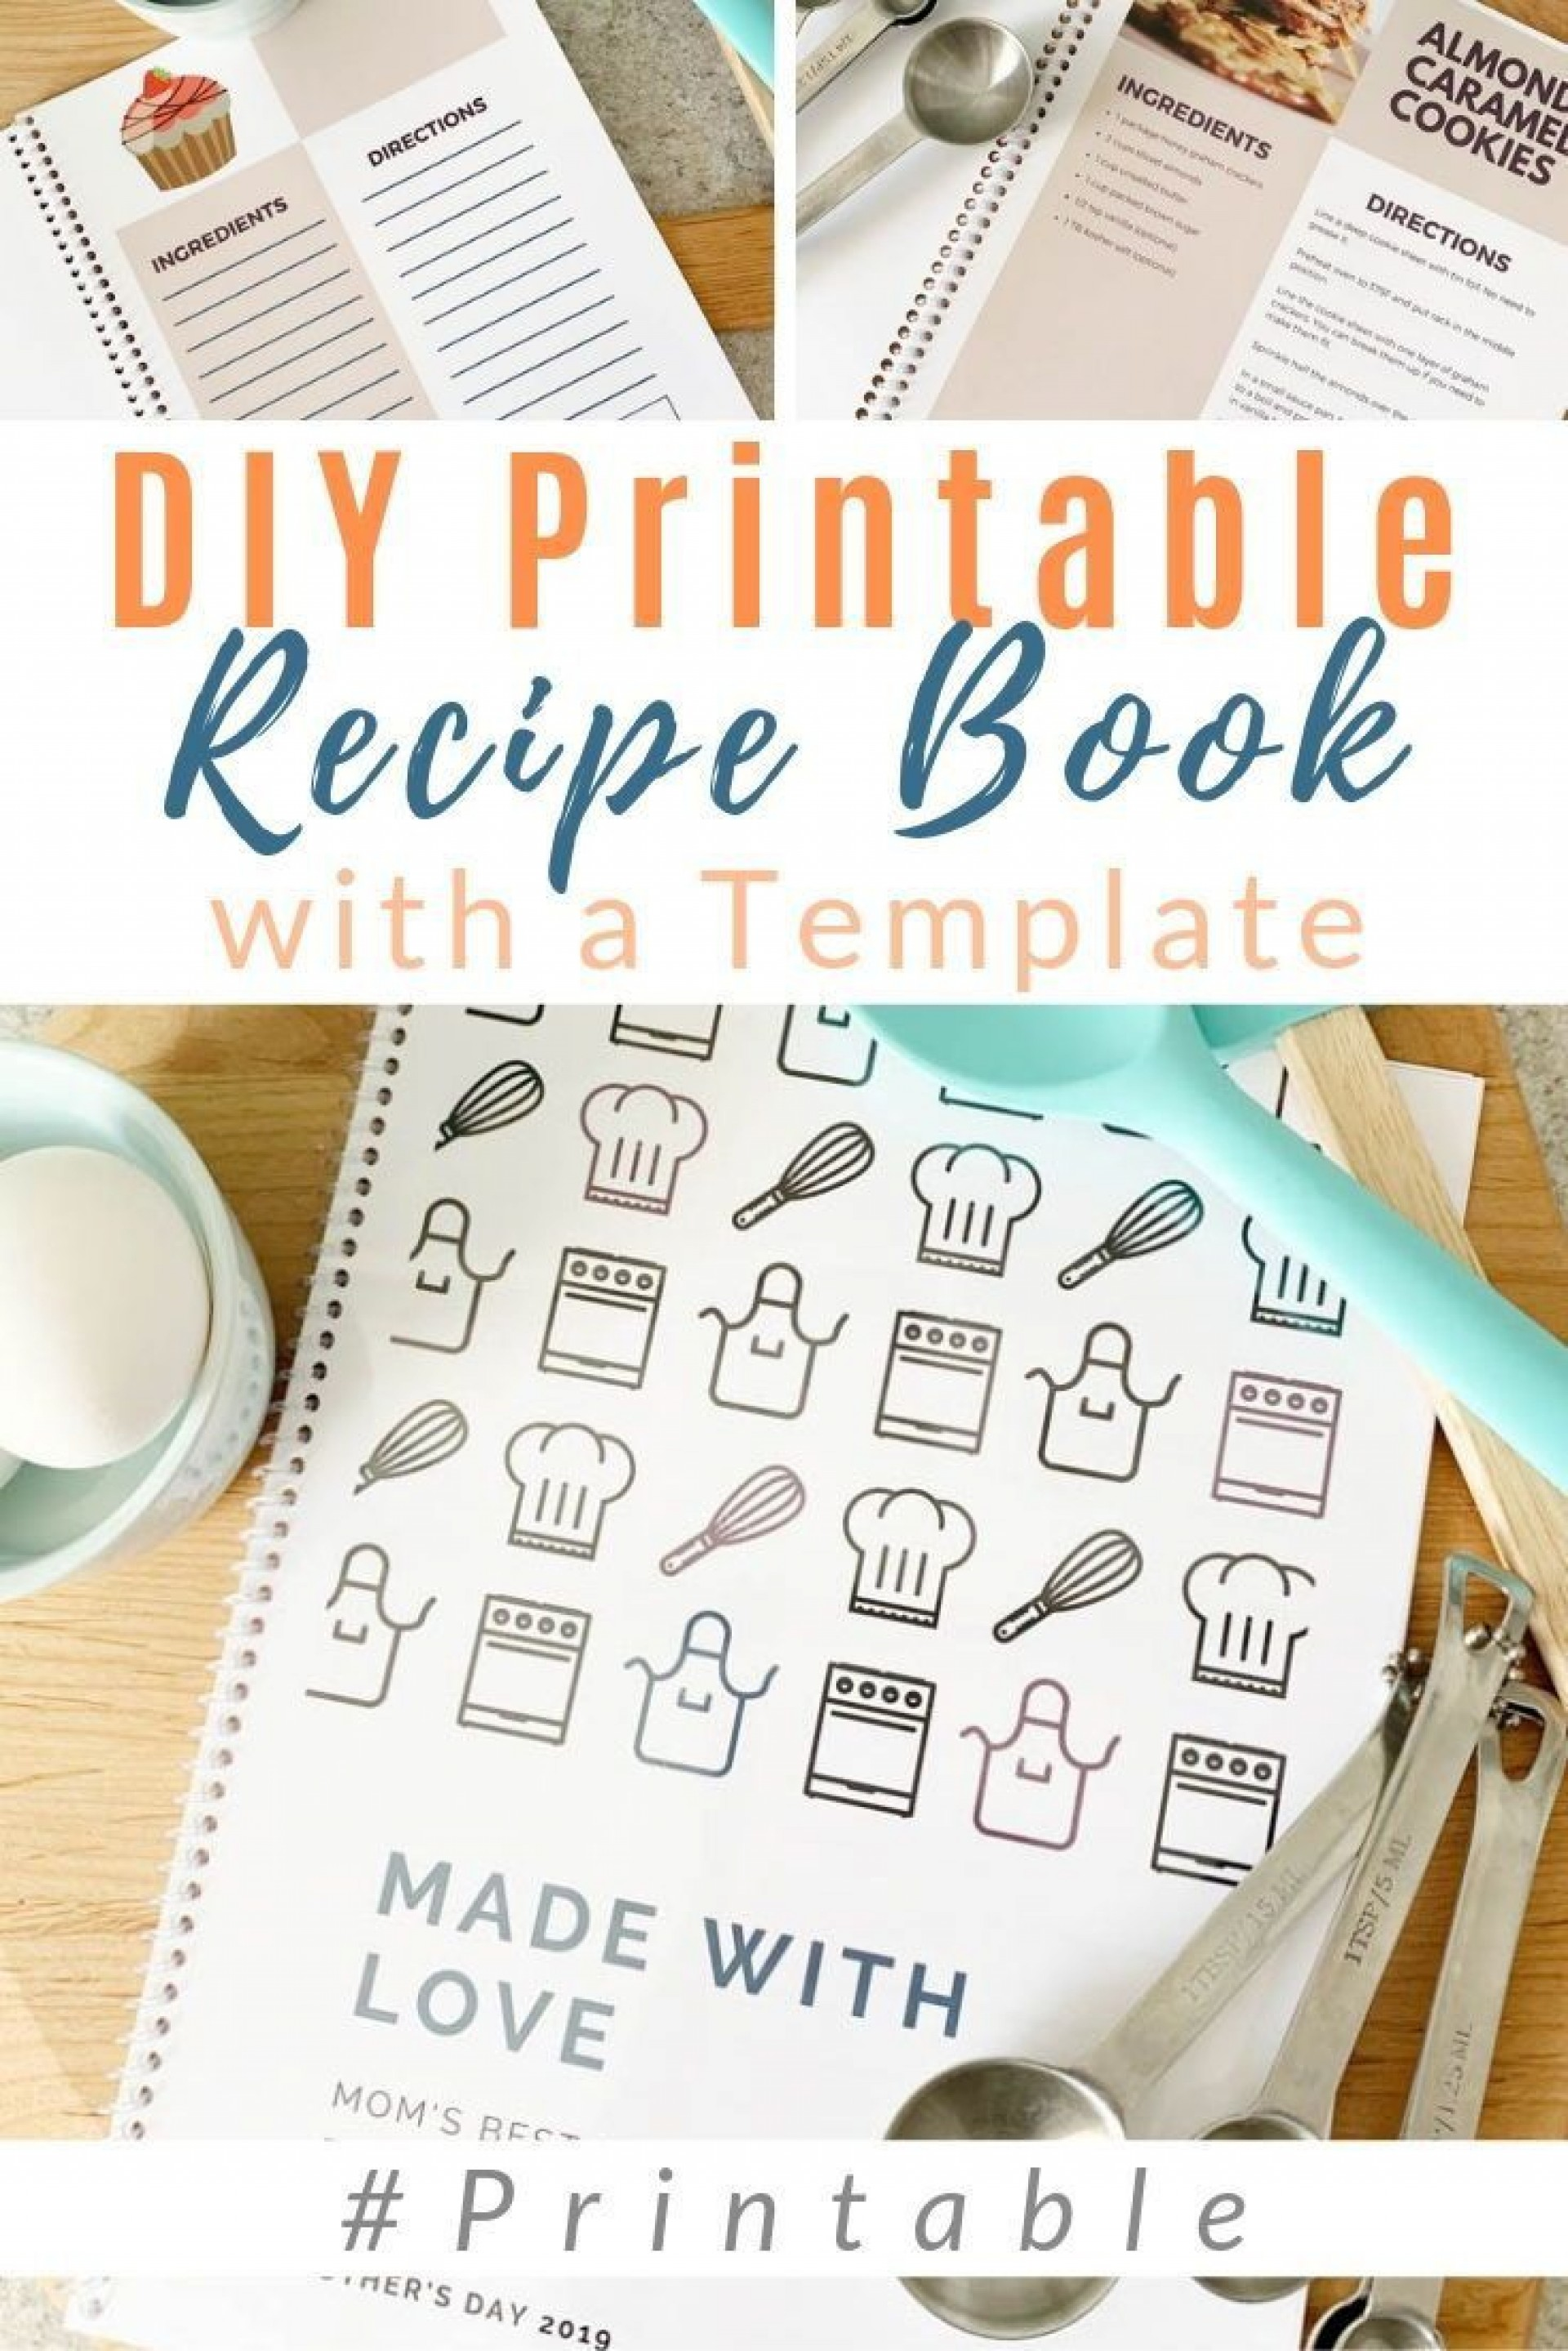 002 Fascinating Make Your Own Cookbook Template Free Photo  Download1920